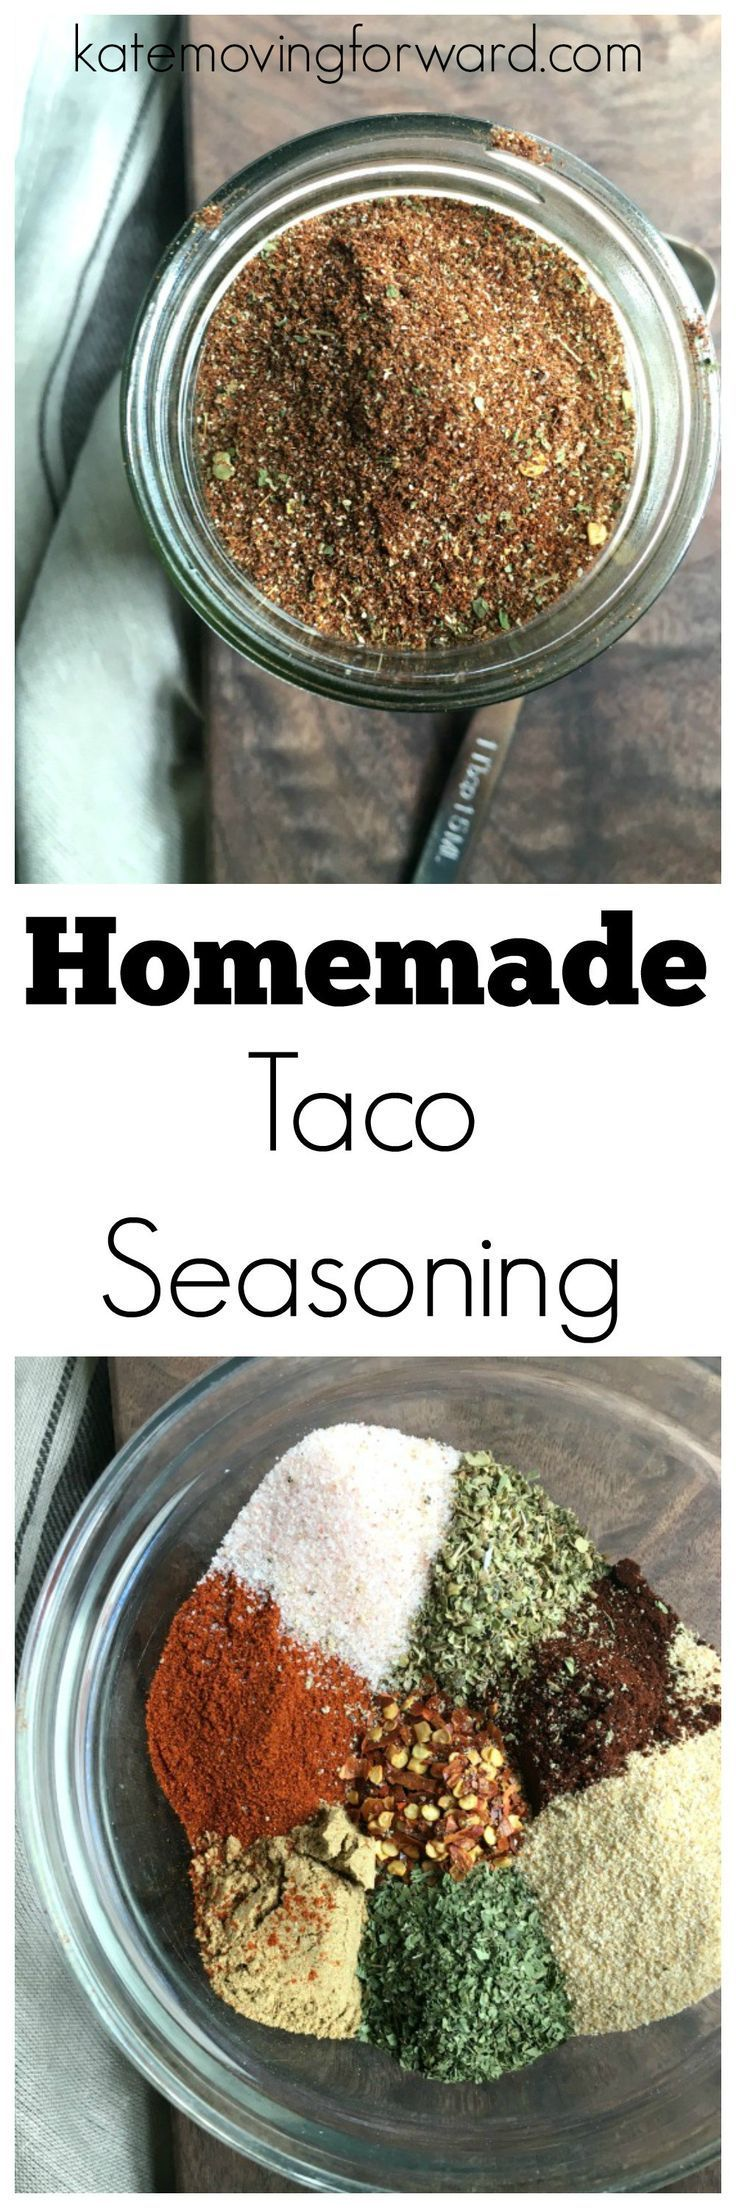 Homemade Taco Seasoning - Make your own DIY taco spice mix for tacos…  #HealthyEating #CleanEating  Sherman Financial Group